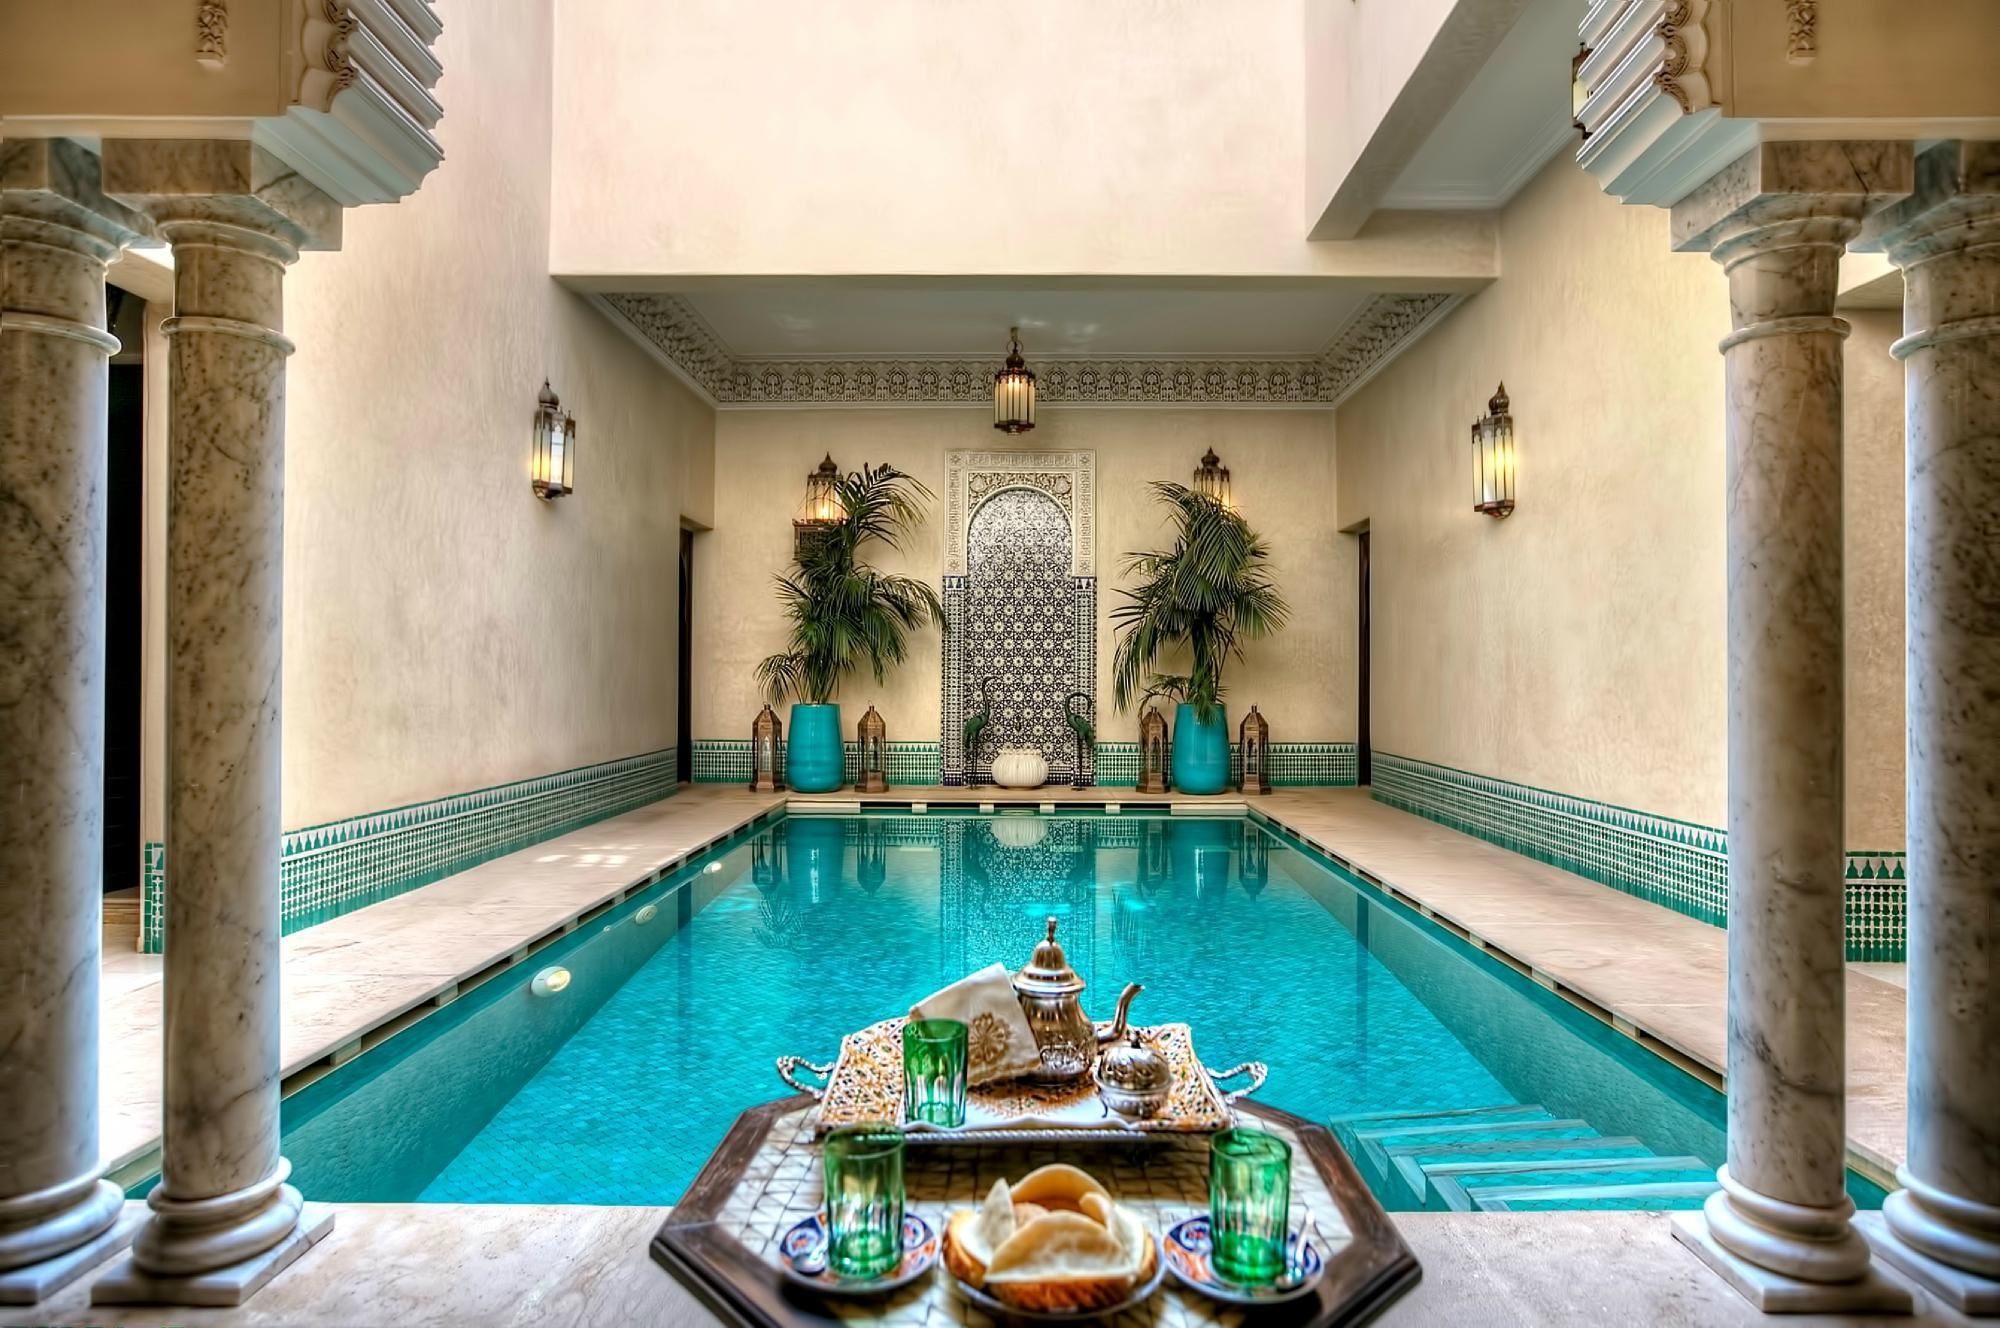 Marrakech Riad Kniza Is One Of The Best Located Riads Hotels In Luxury Rooms Free Wifi Spa Restaurant Special Offers Available Now